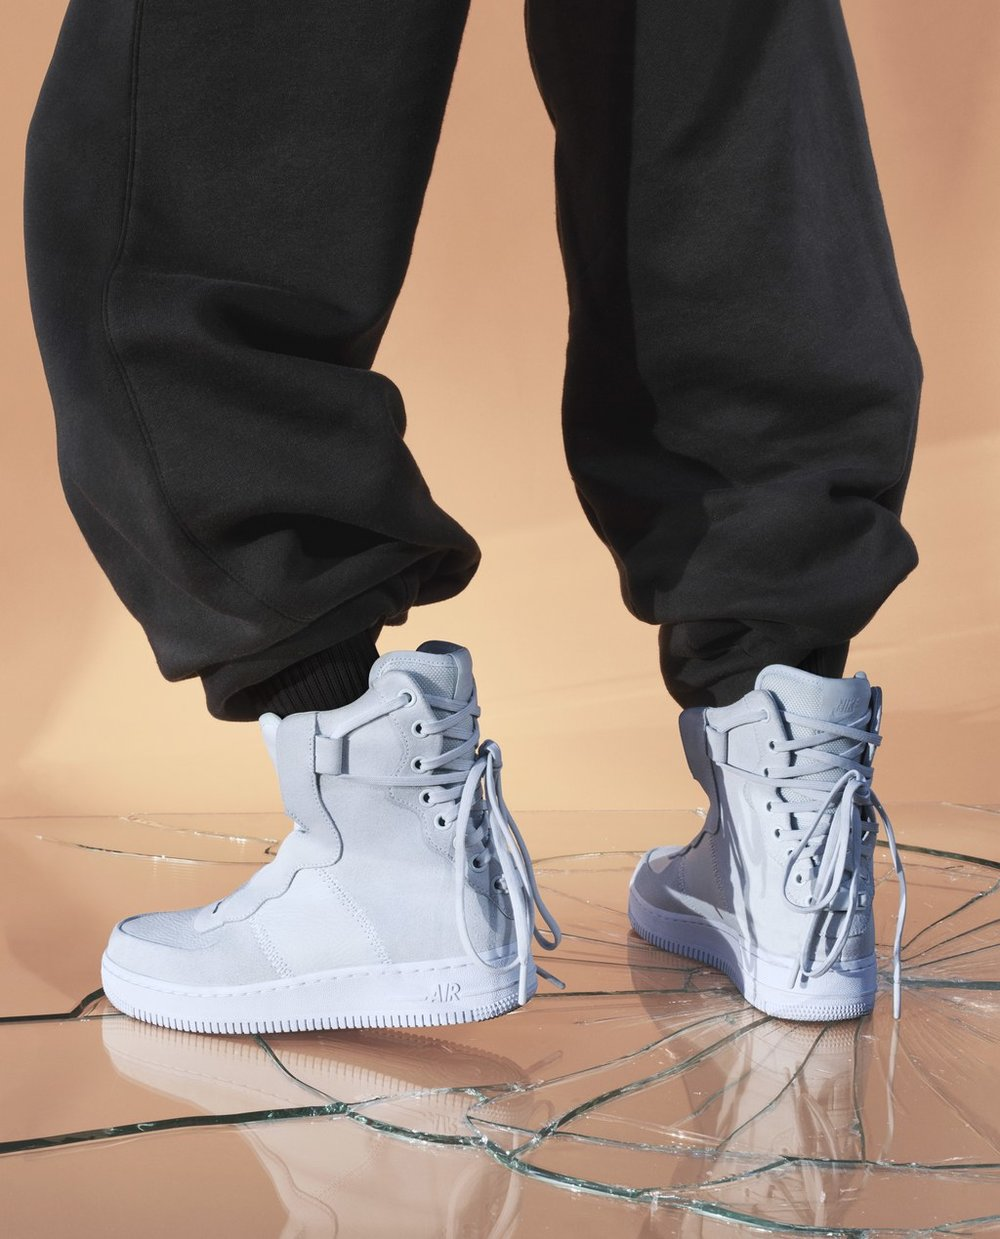 Sp18_NWMN_The1Reimagined_AF1_Rebels_Product%20on%20Body.jpg